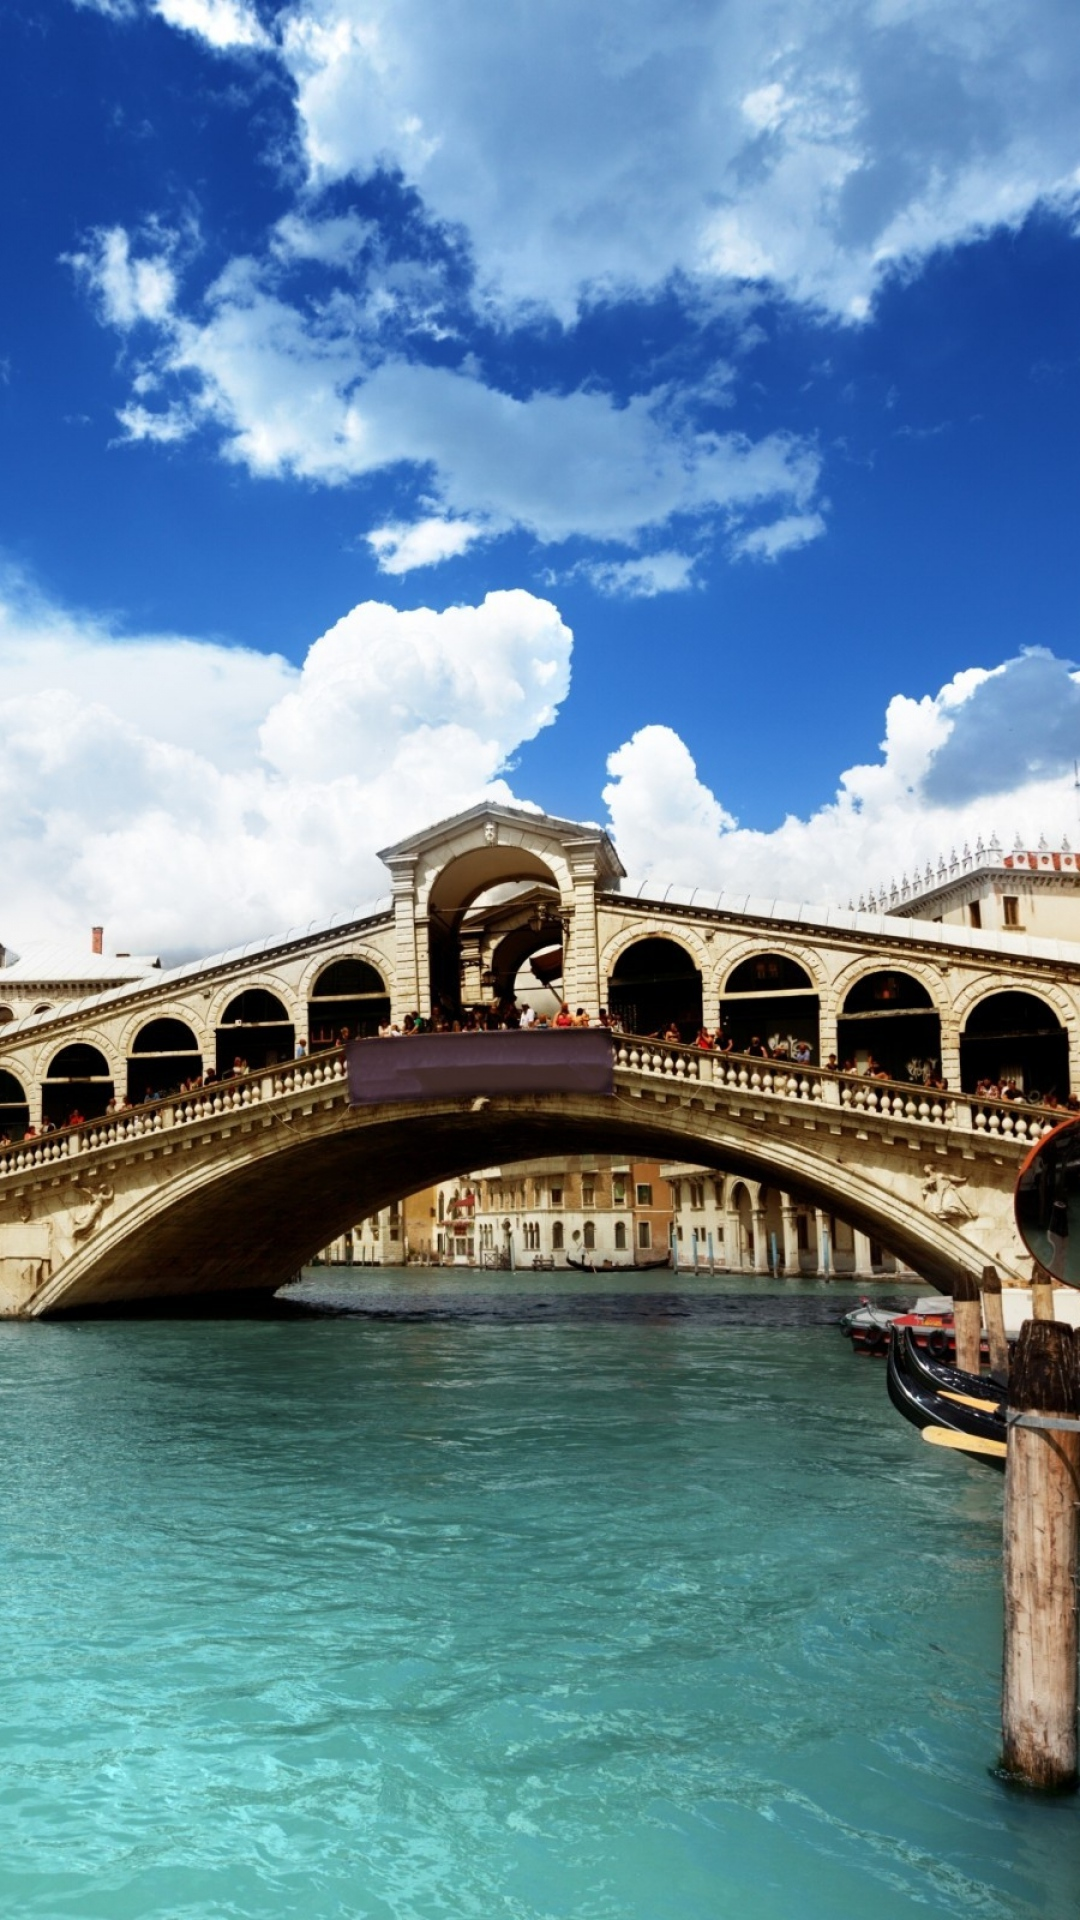 Htc One M8 Wallpaper Hd Venice River Best Htc One Wallpapers Free And Easy To